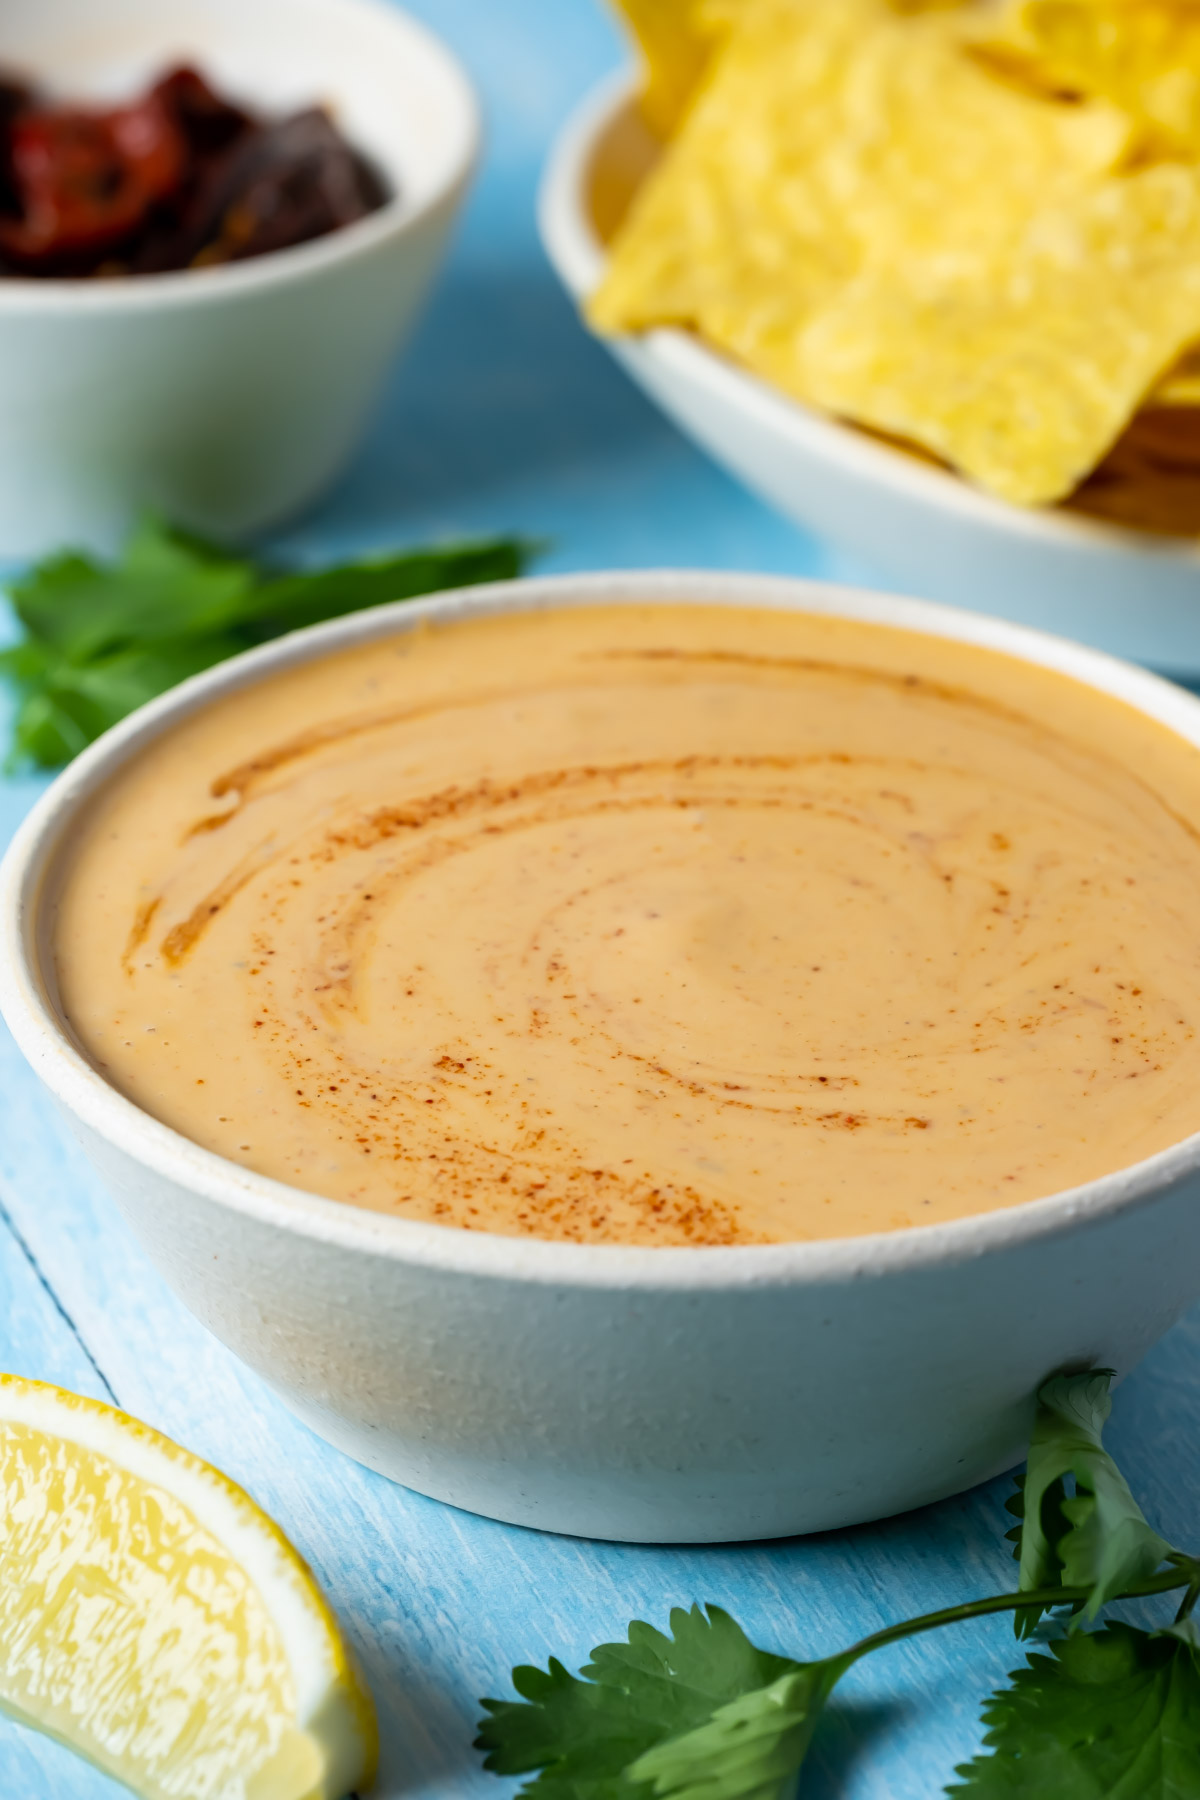 Vegan chipotle sauce in a white bowl.